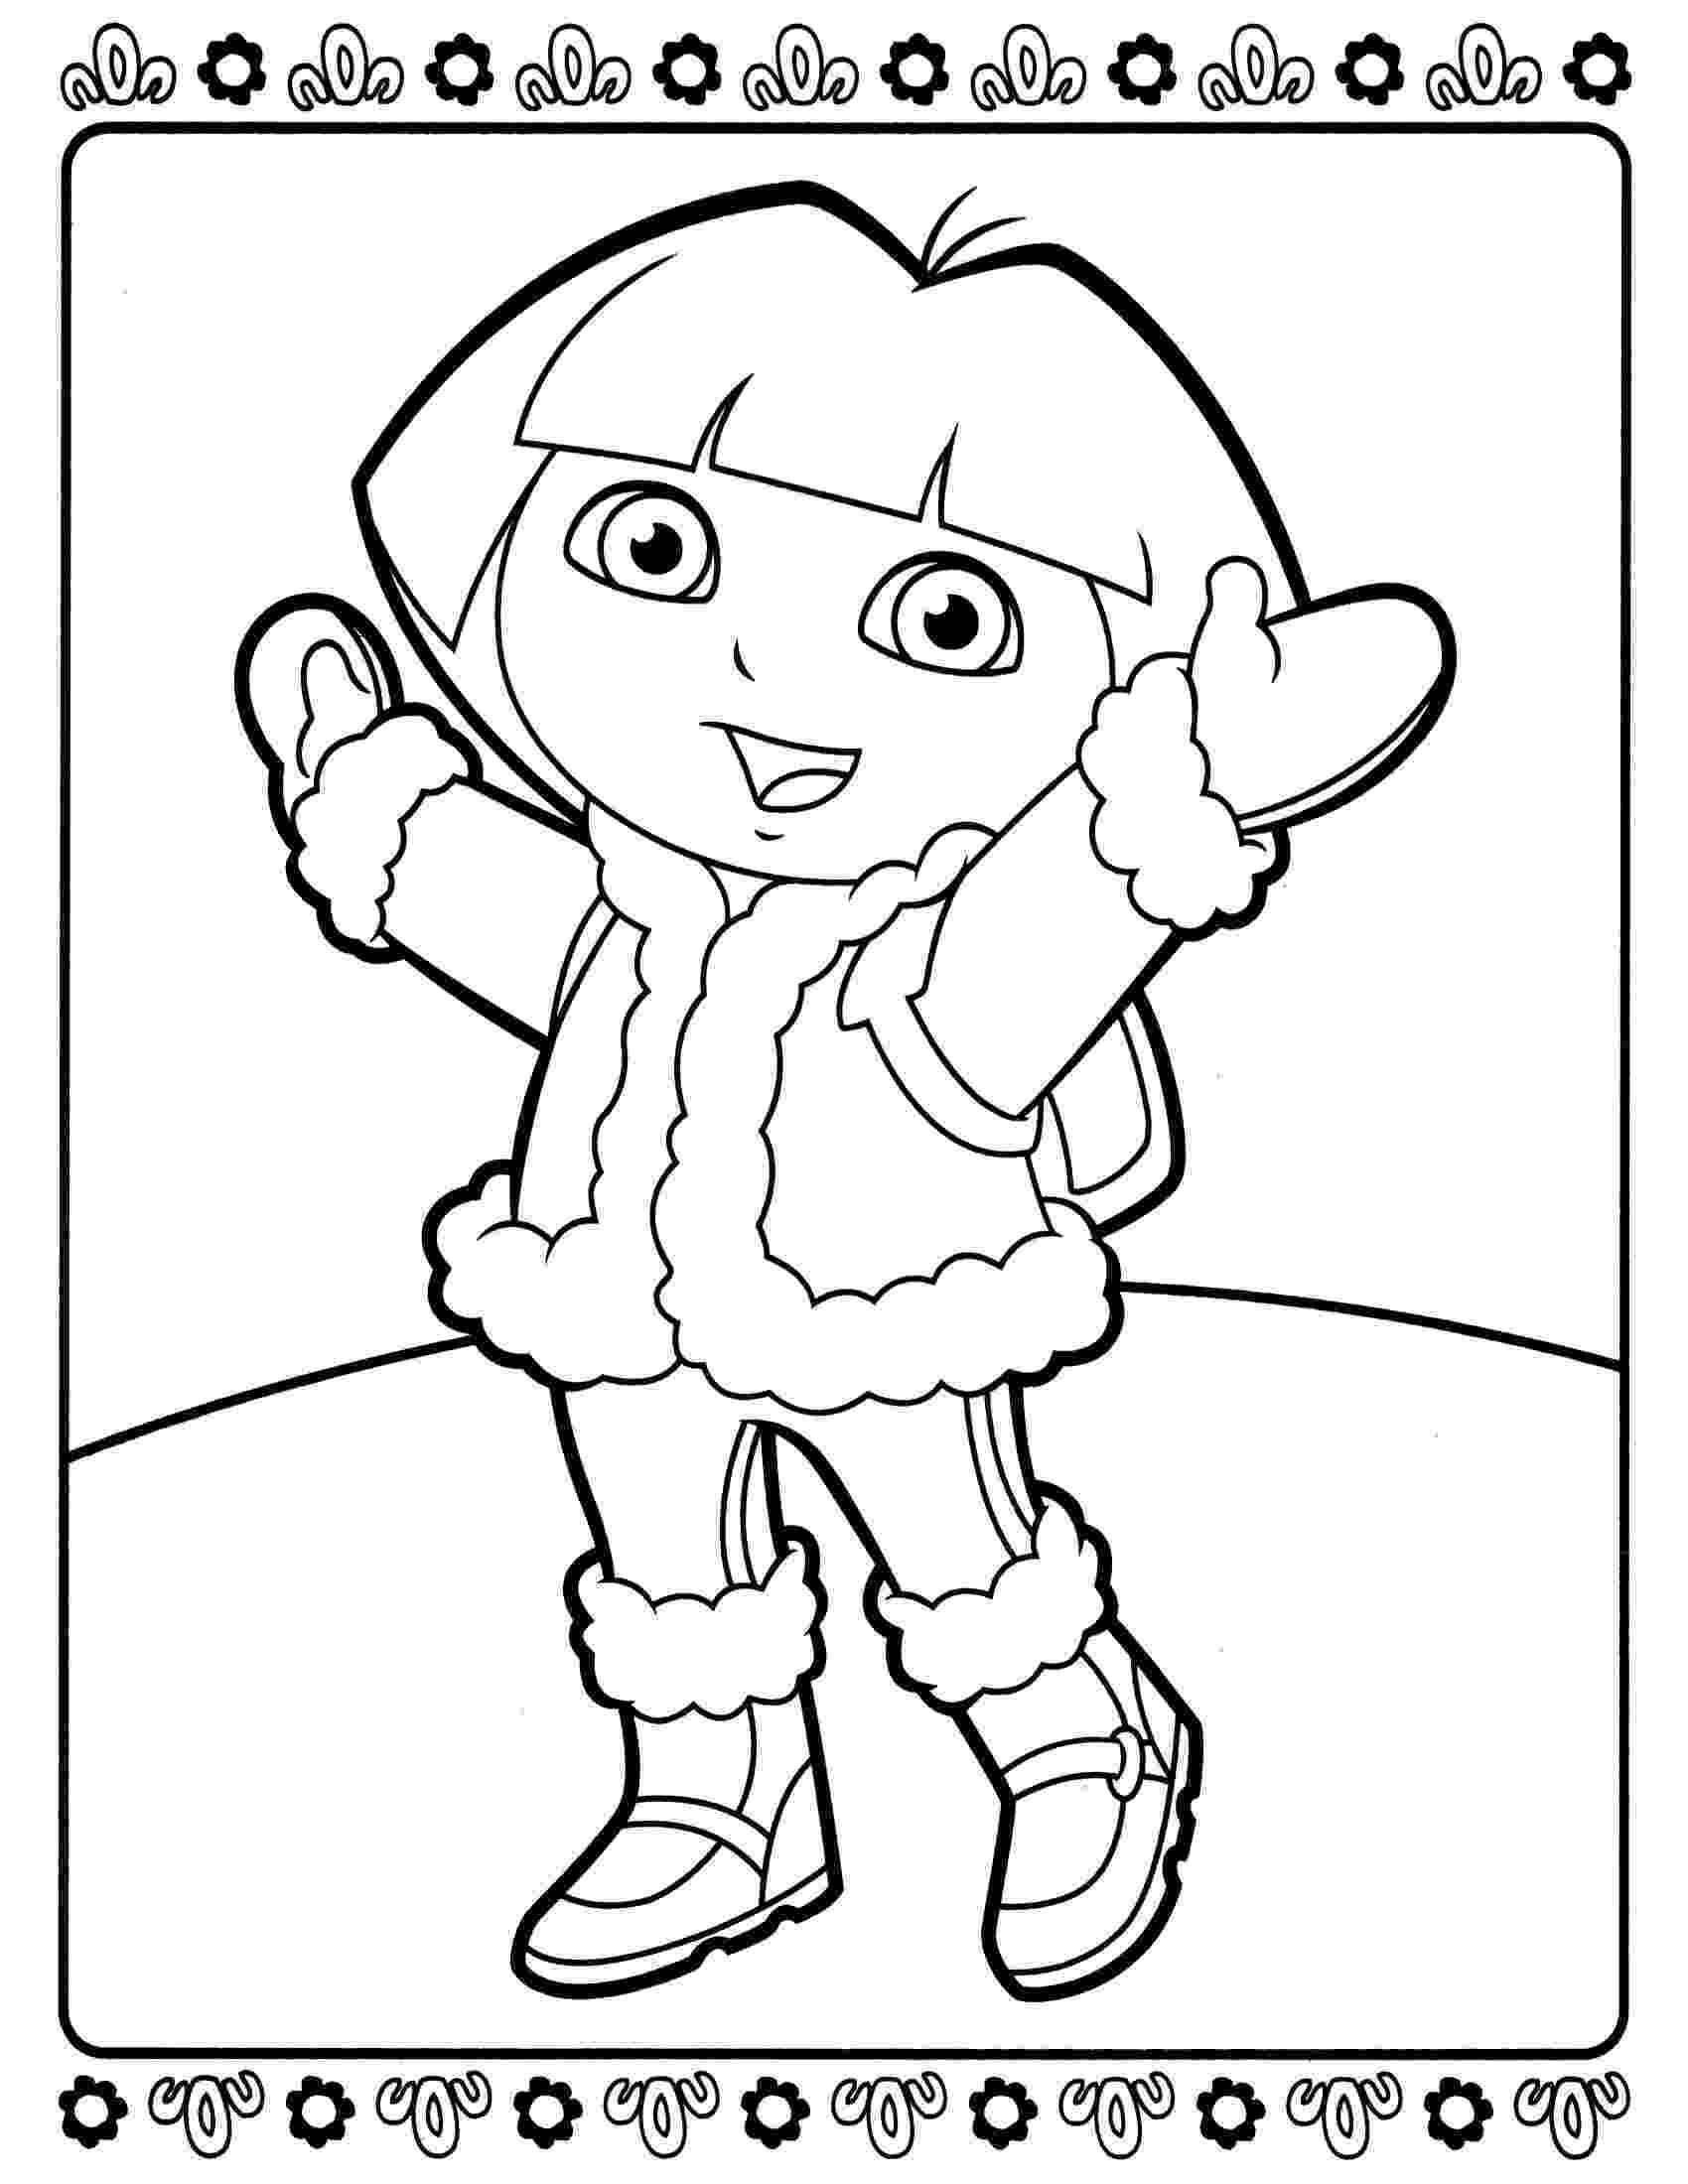 dora black and white coloring pages dora clip art images illustrations photos coloring white pages black and dora